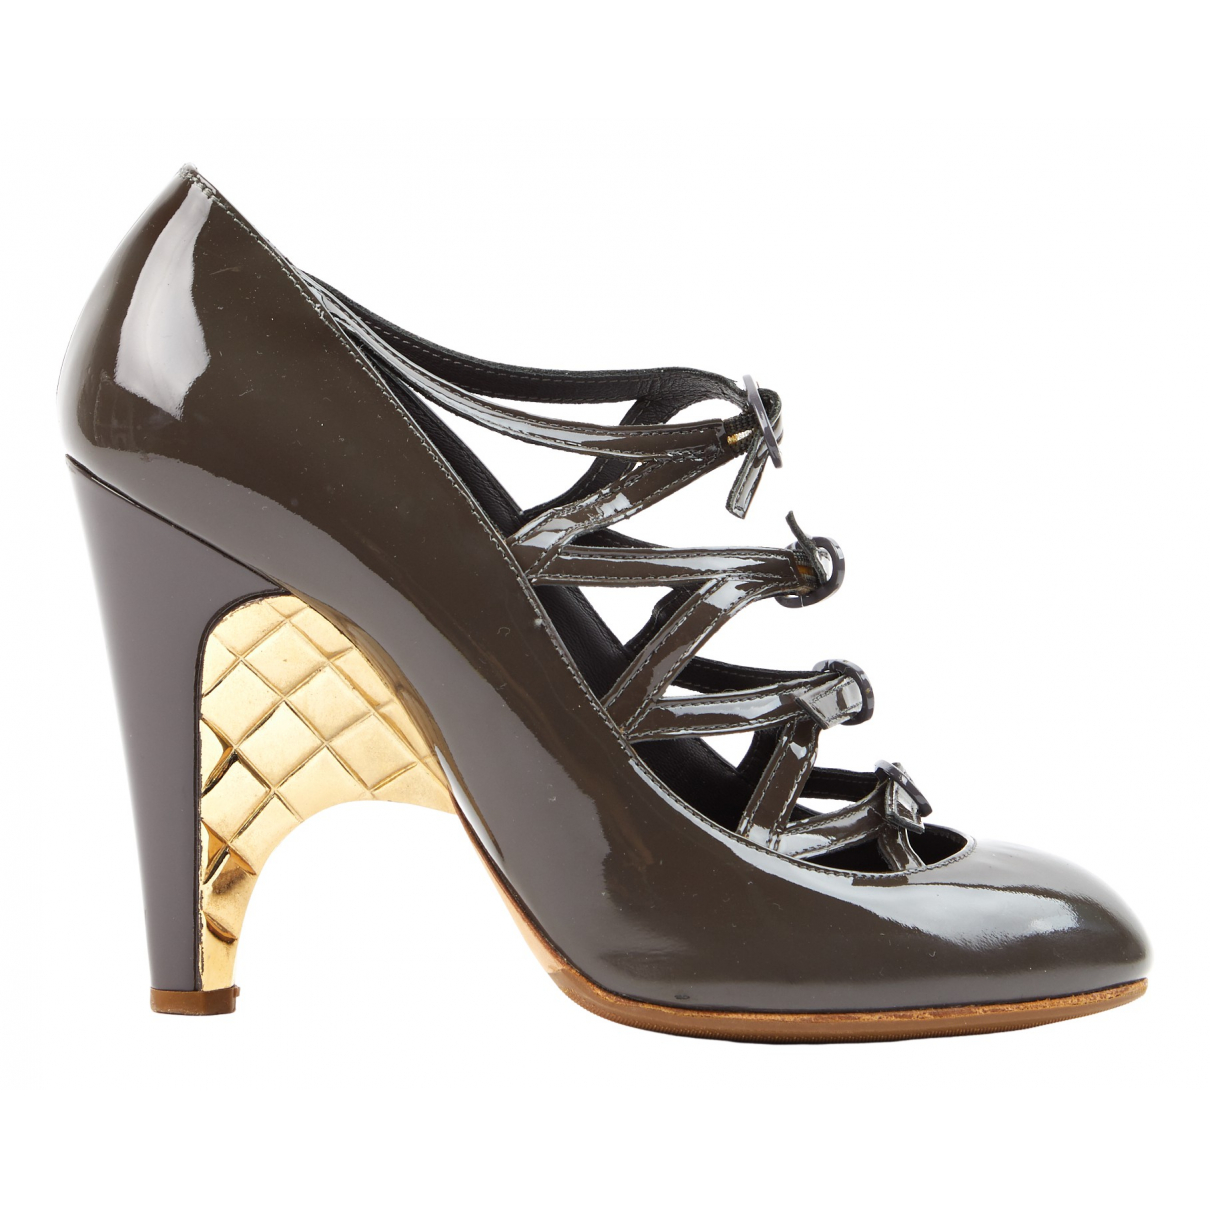 Chanel N Brown Patent leather Heels for Women 39.5 EU